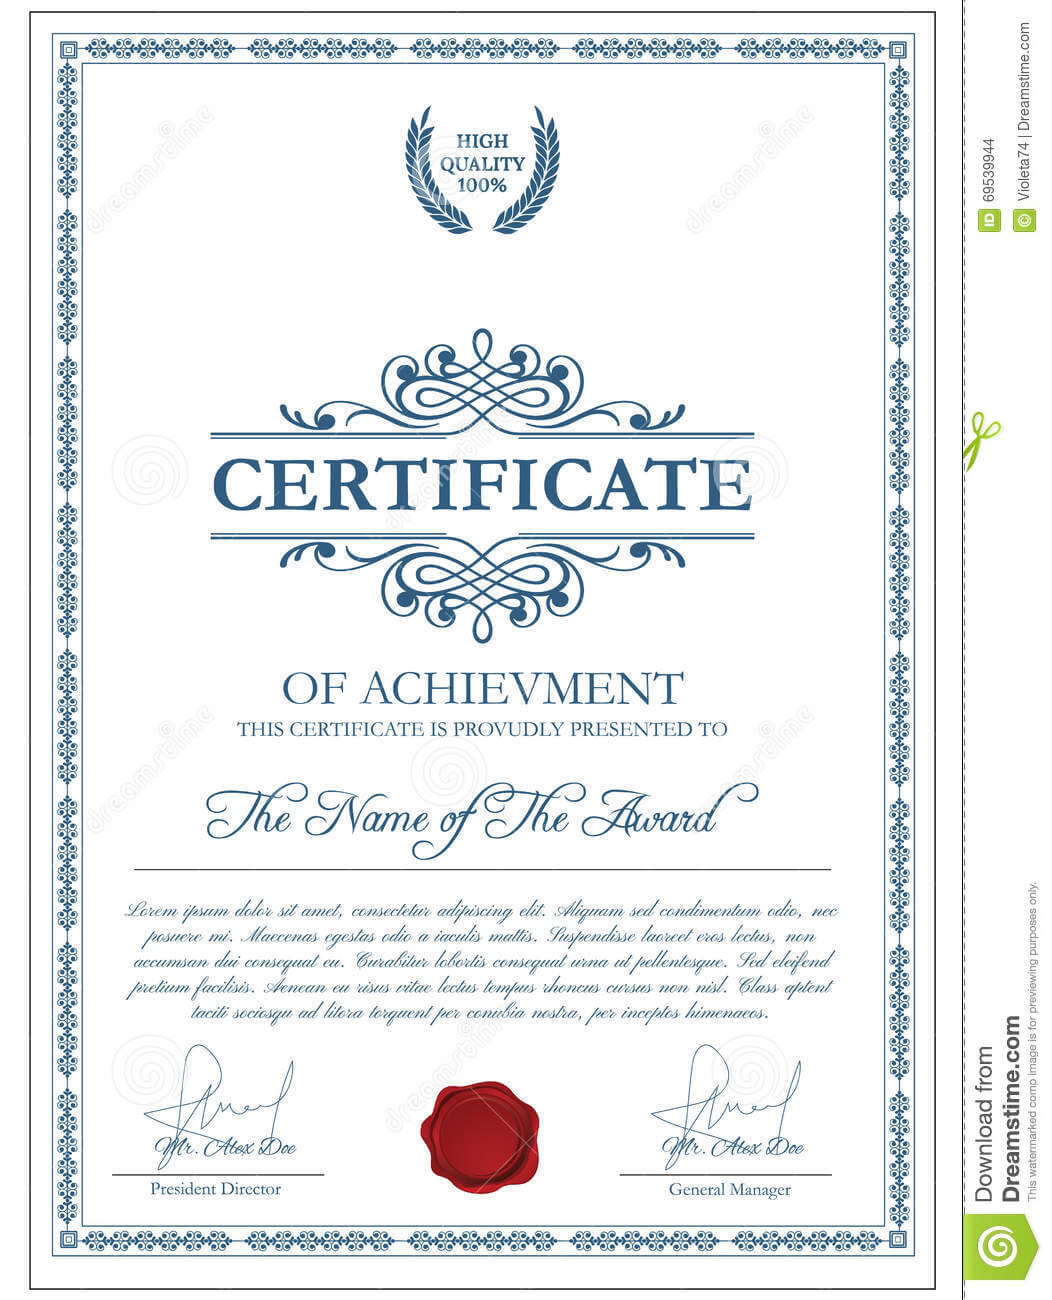 Certificate Template With Guilloche Elements. Stock Vector For Validation Certificate Template